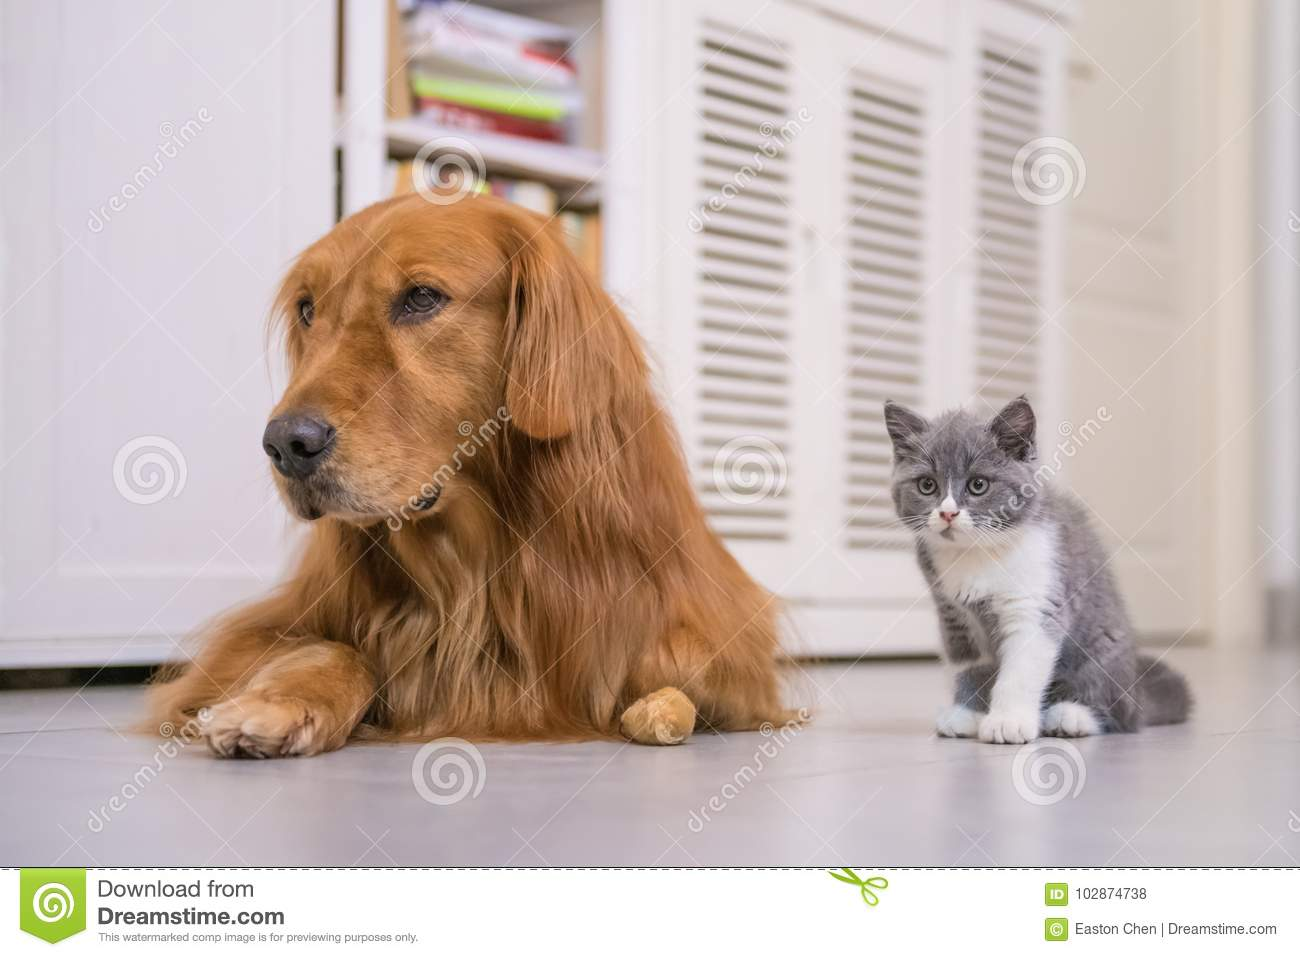 Golden Retriever And British Shorthair Cat Stock Photo - Image of